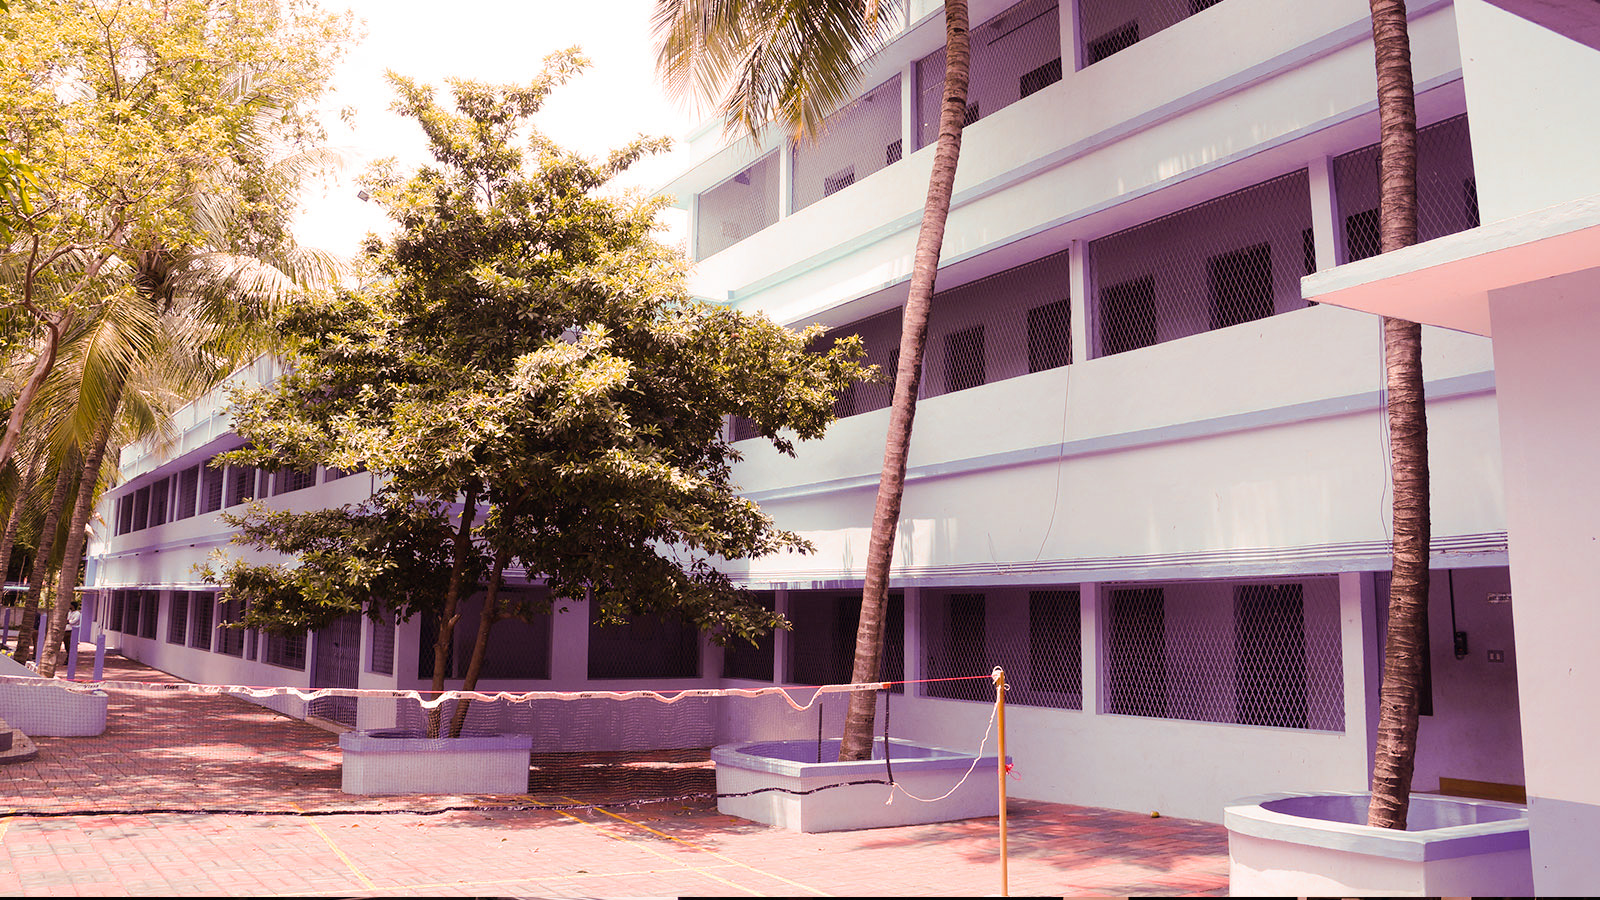 St. Mary's (Pvt) Industrial Training Institute